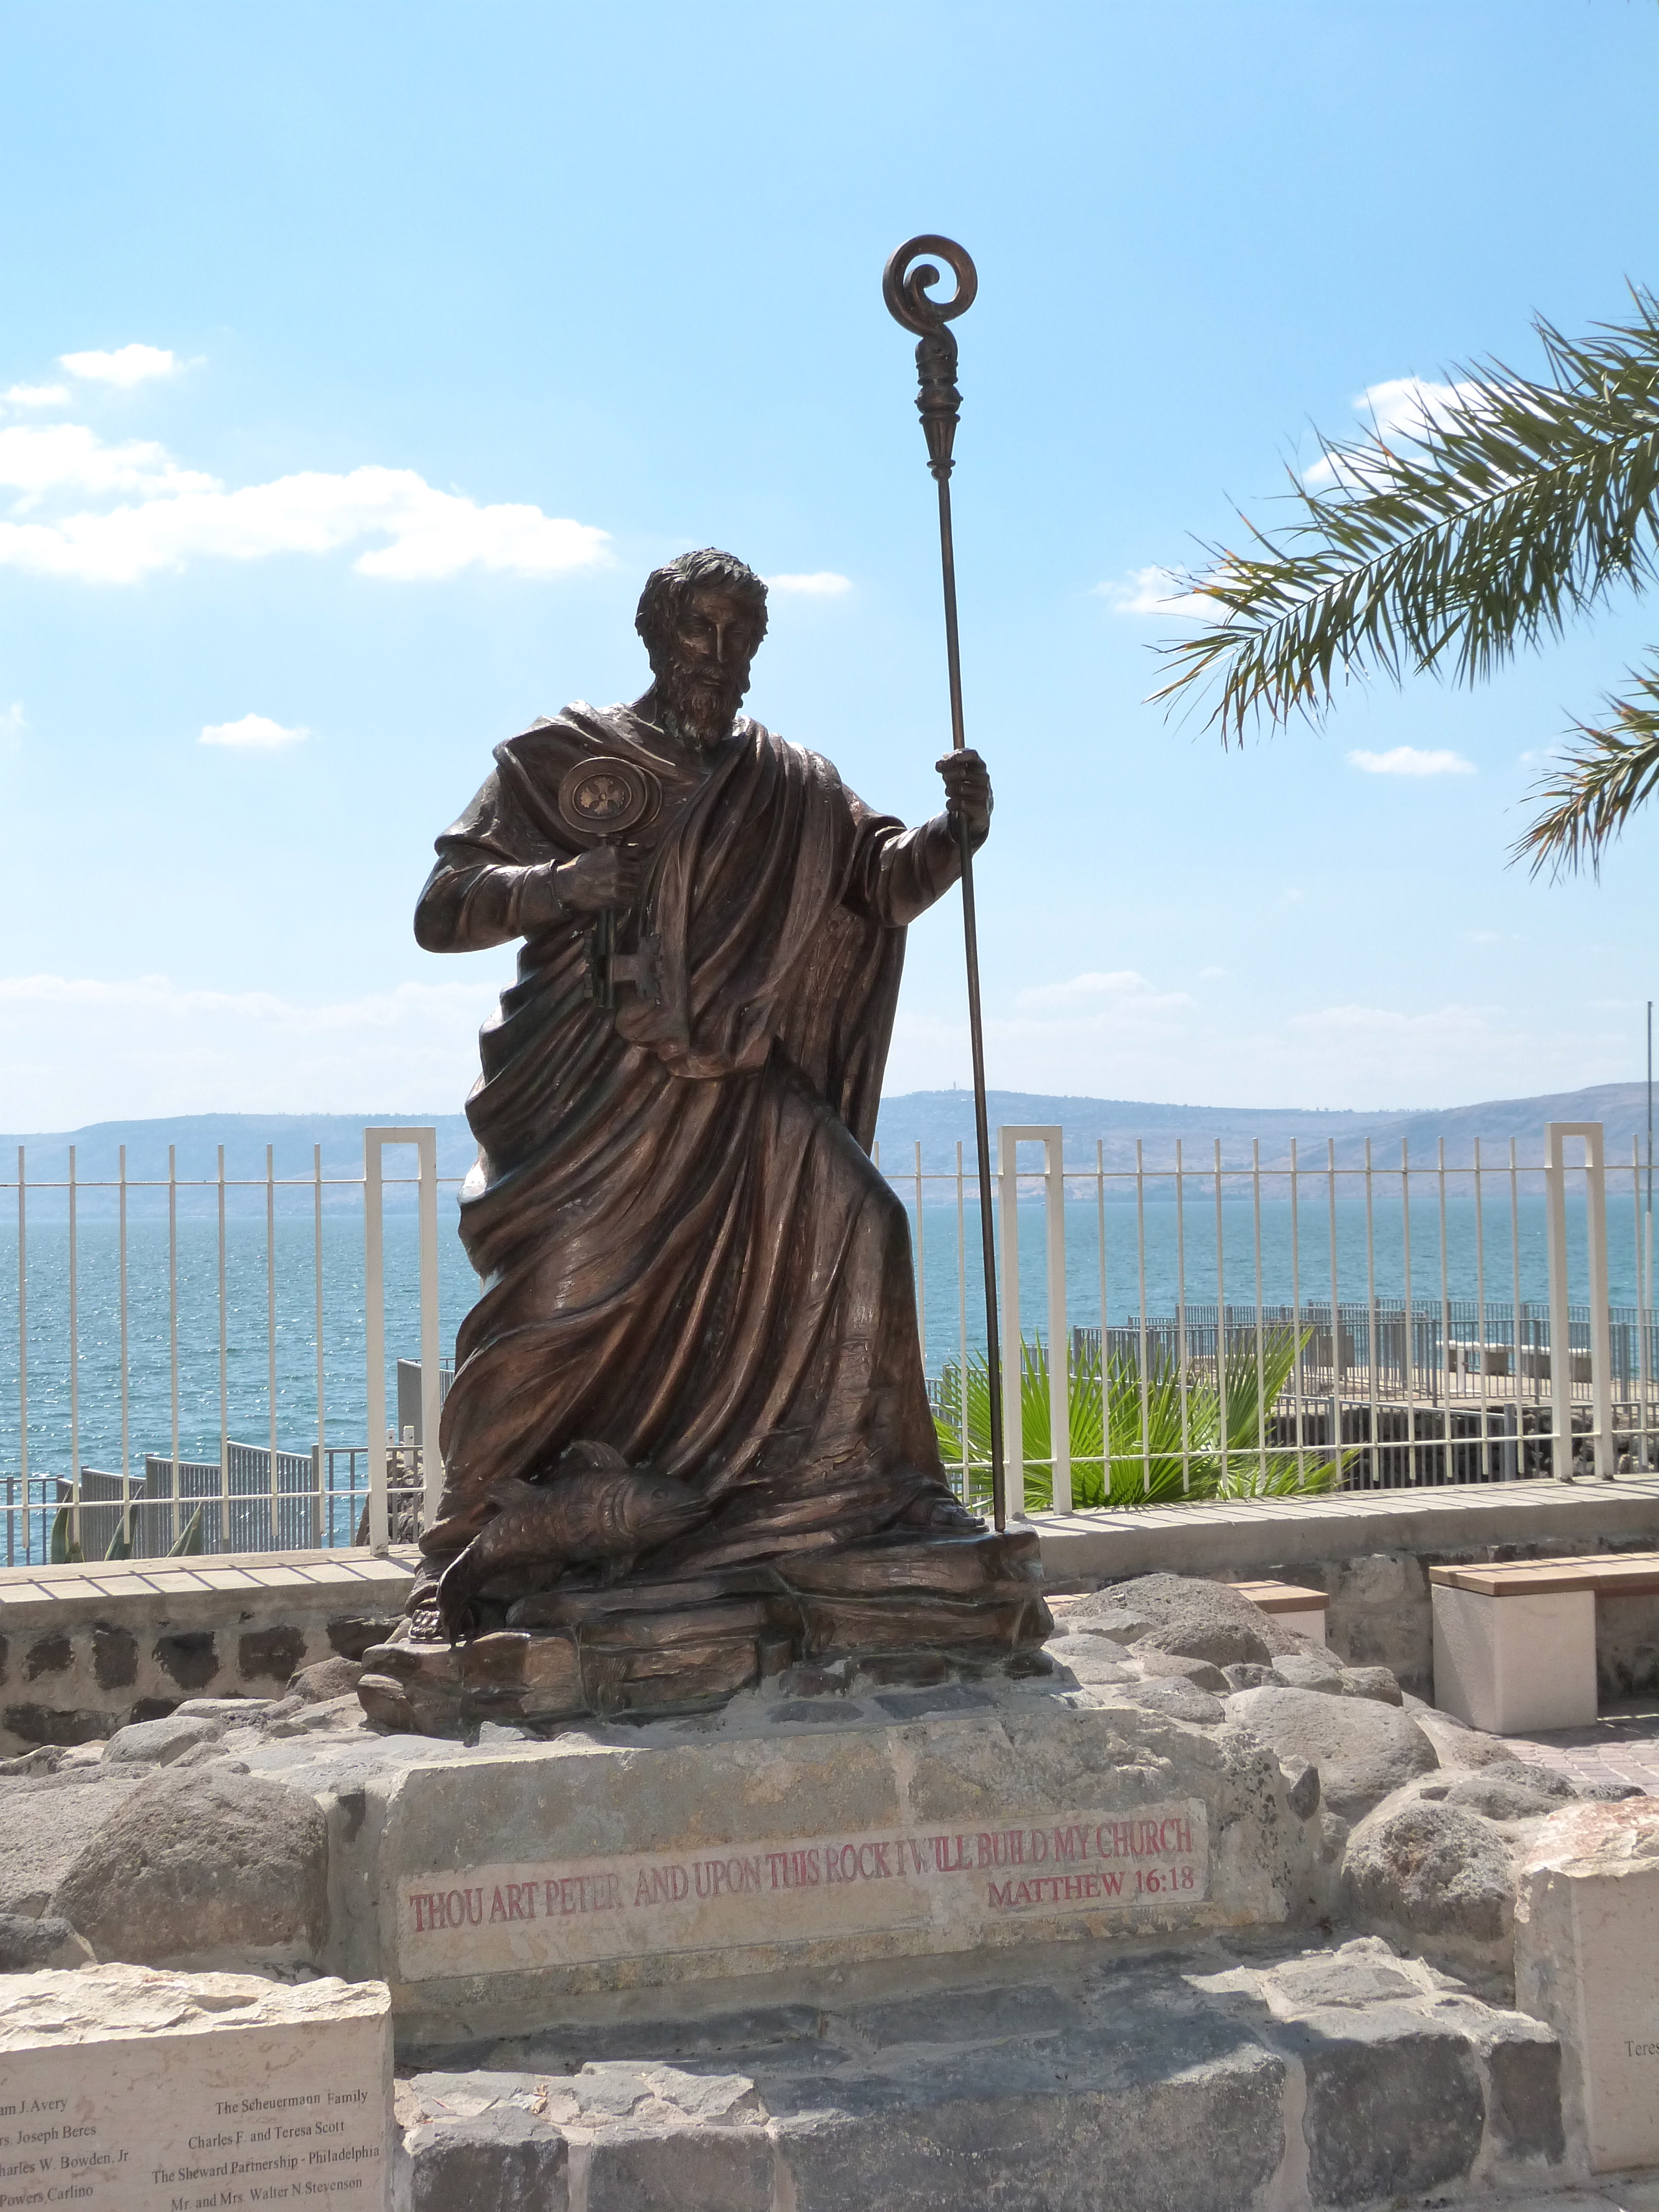 Statue Of St Peter At Capernaum With Sea Of Galilee In